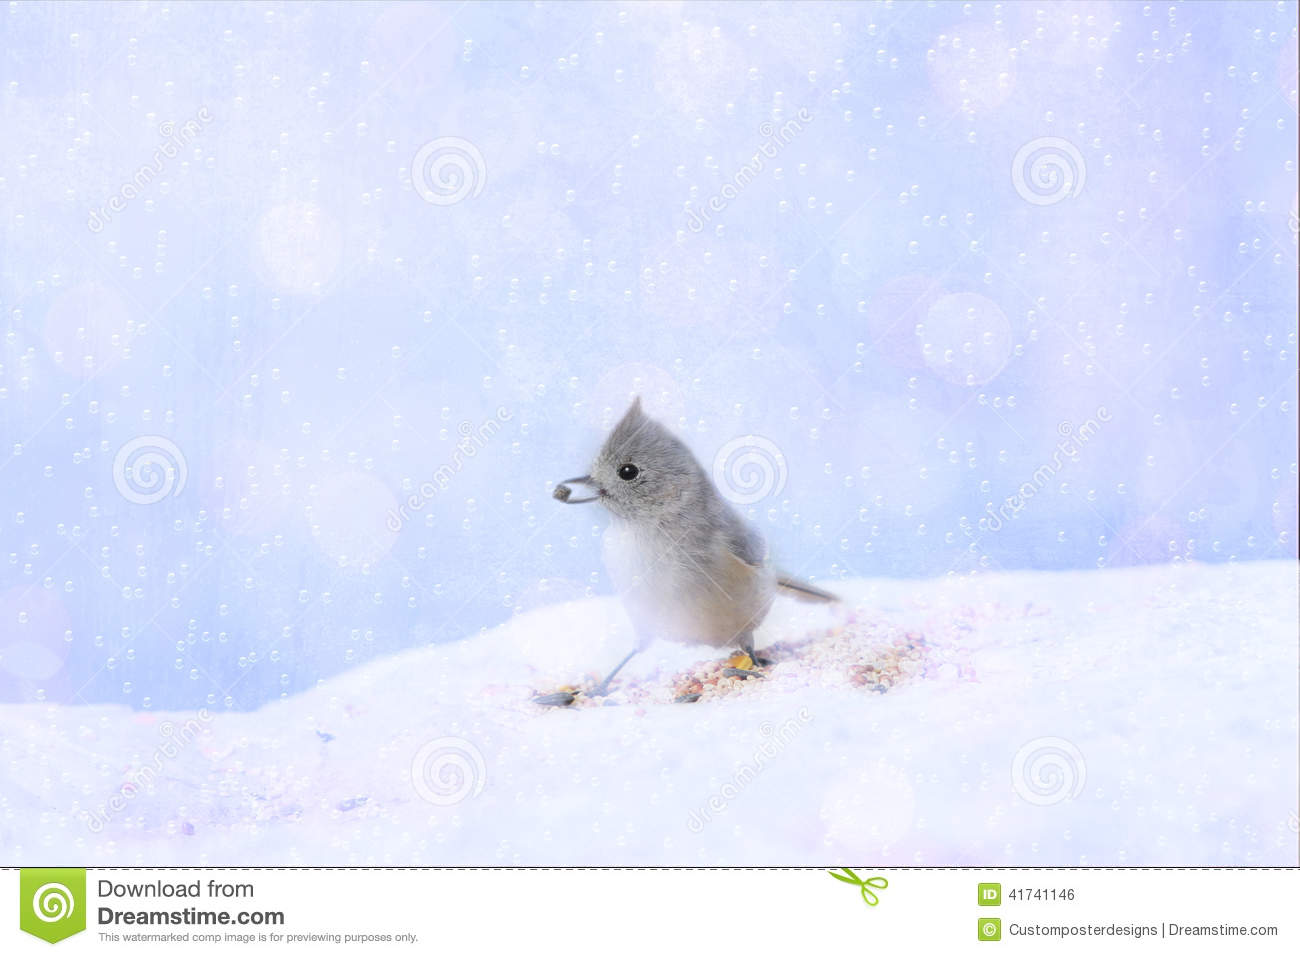 Download Bird in the snow stock photo. Image of designed, textured - 41741146